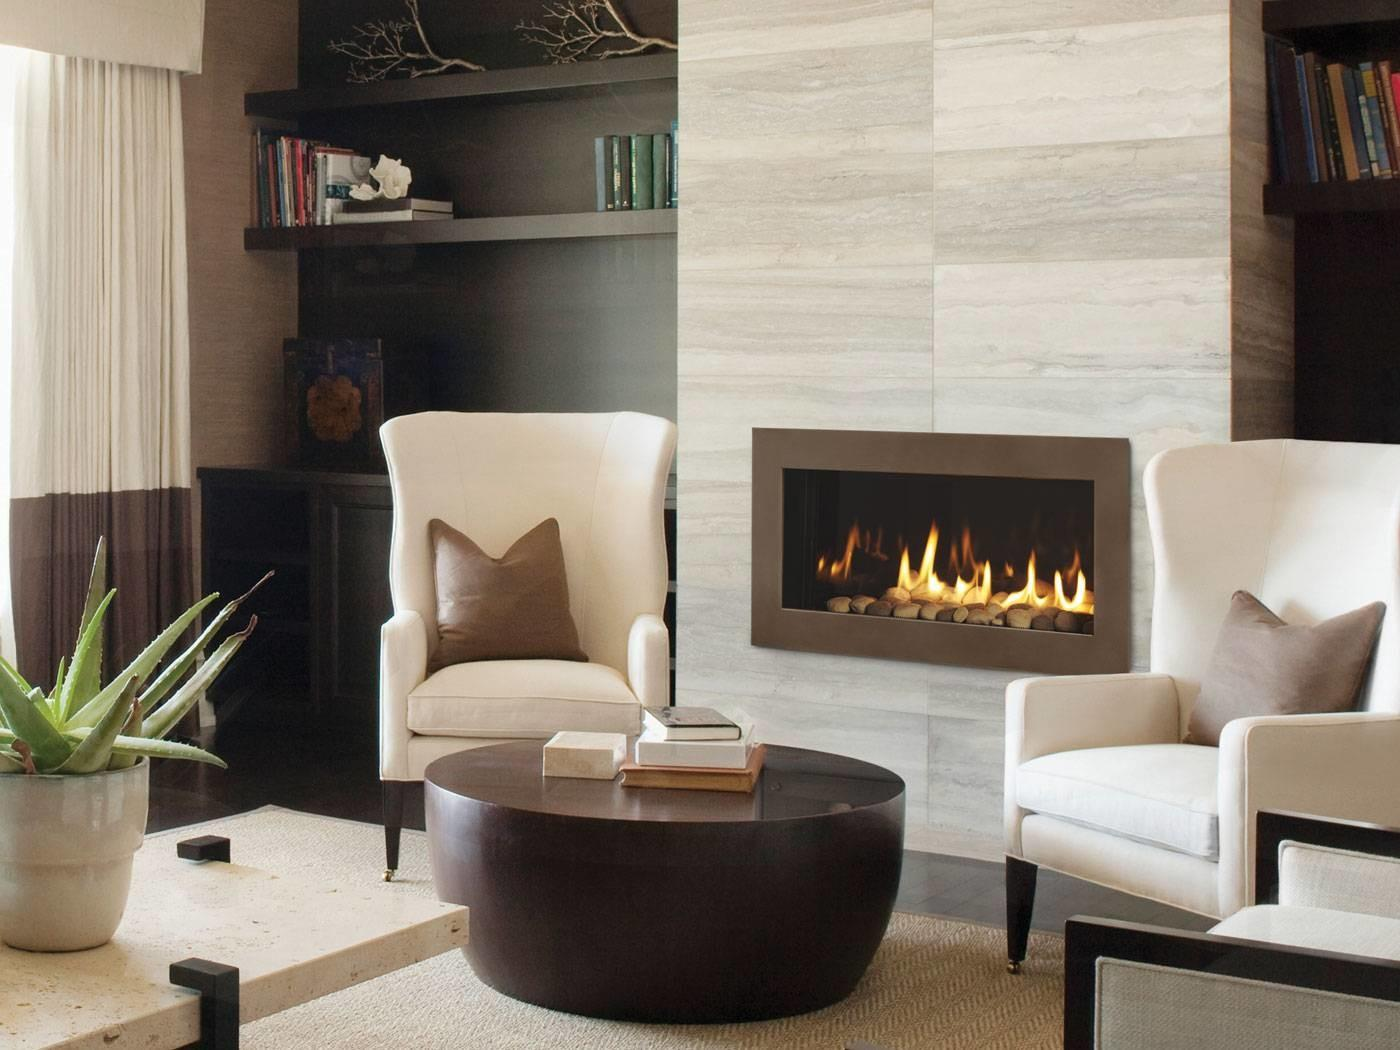 More Modern Gas Fireplace Middle Reception Room